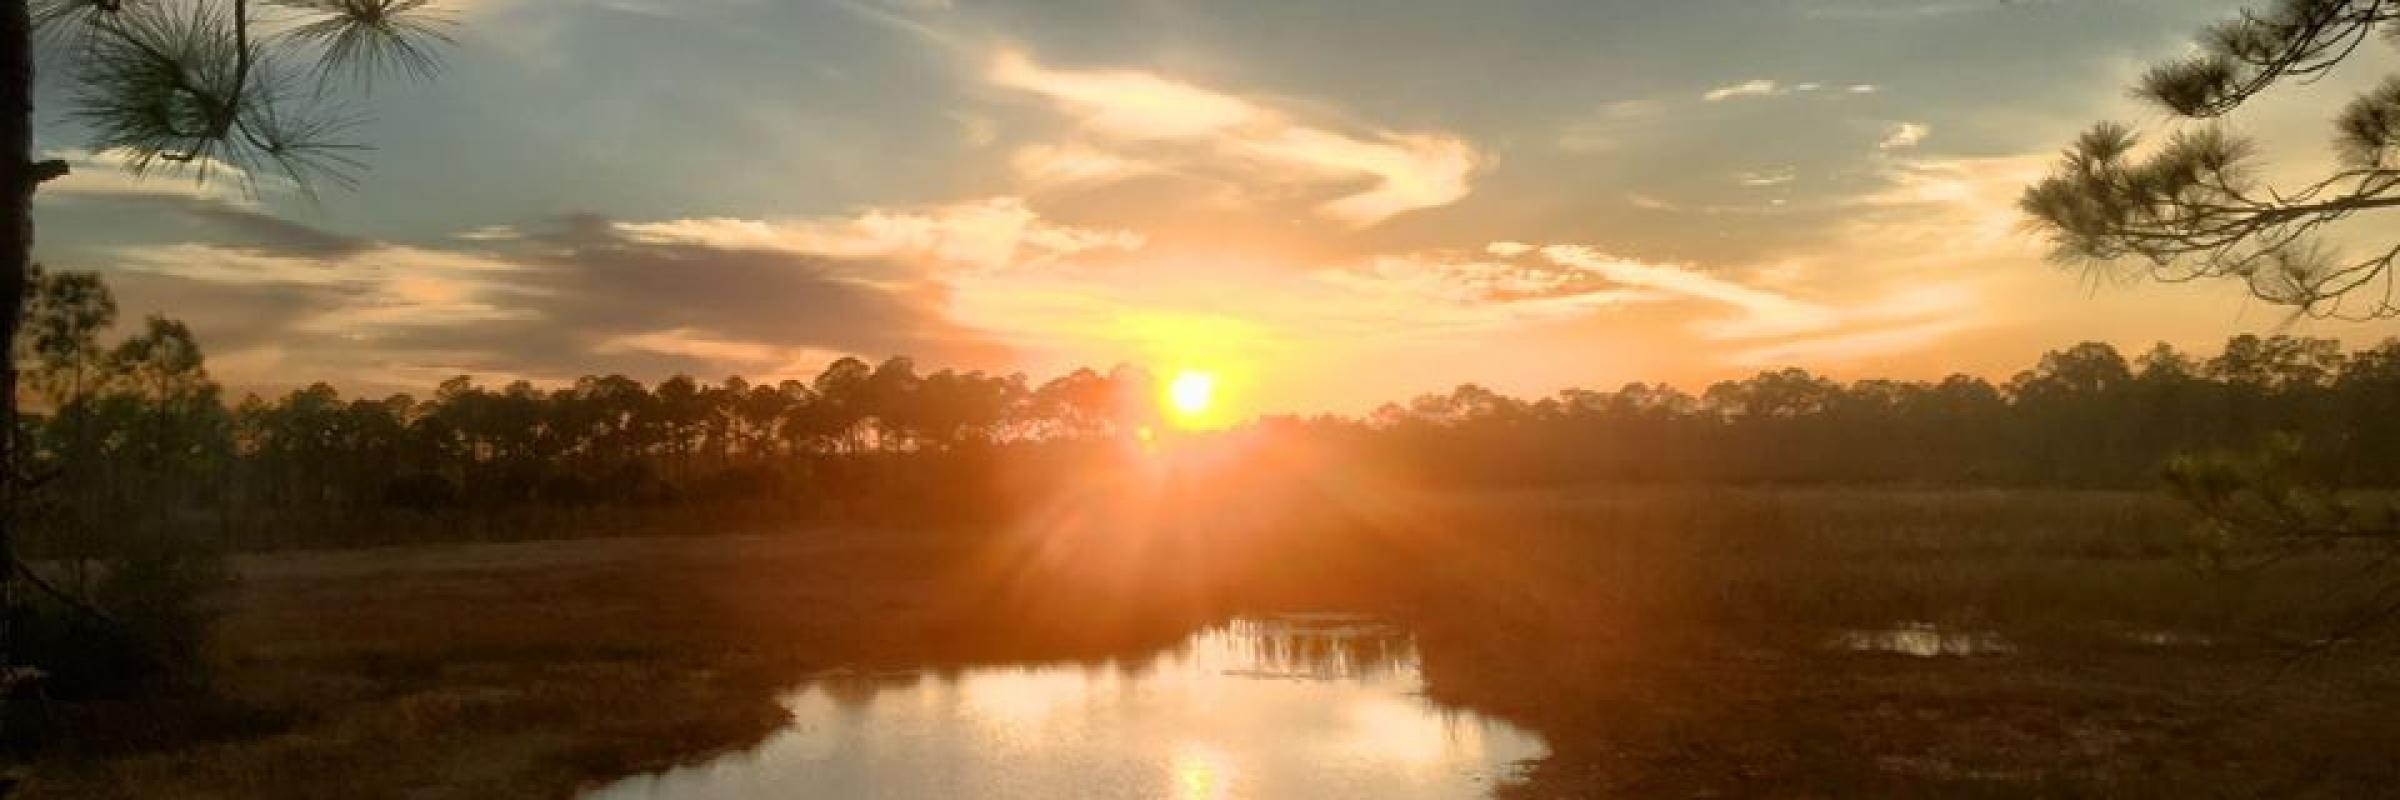 Sunset over a Charlotte County Park